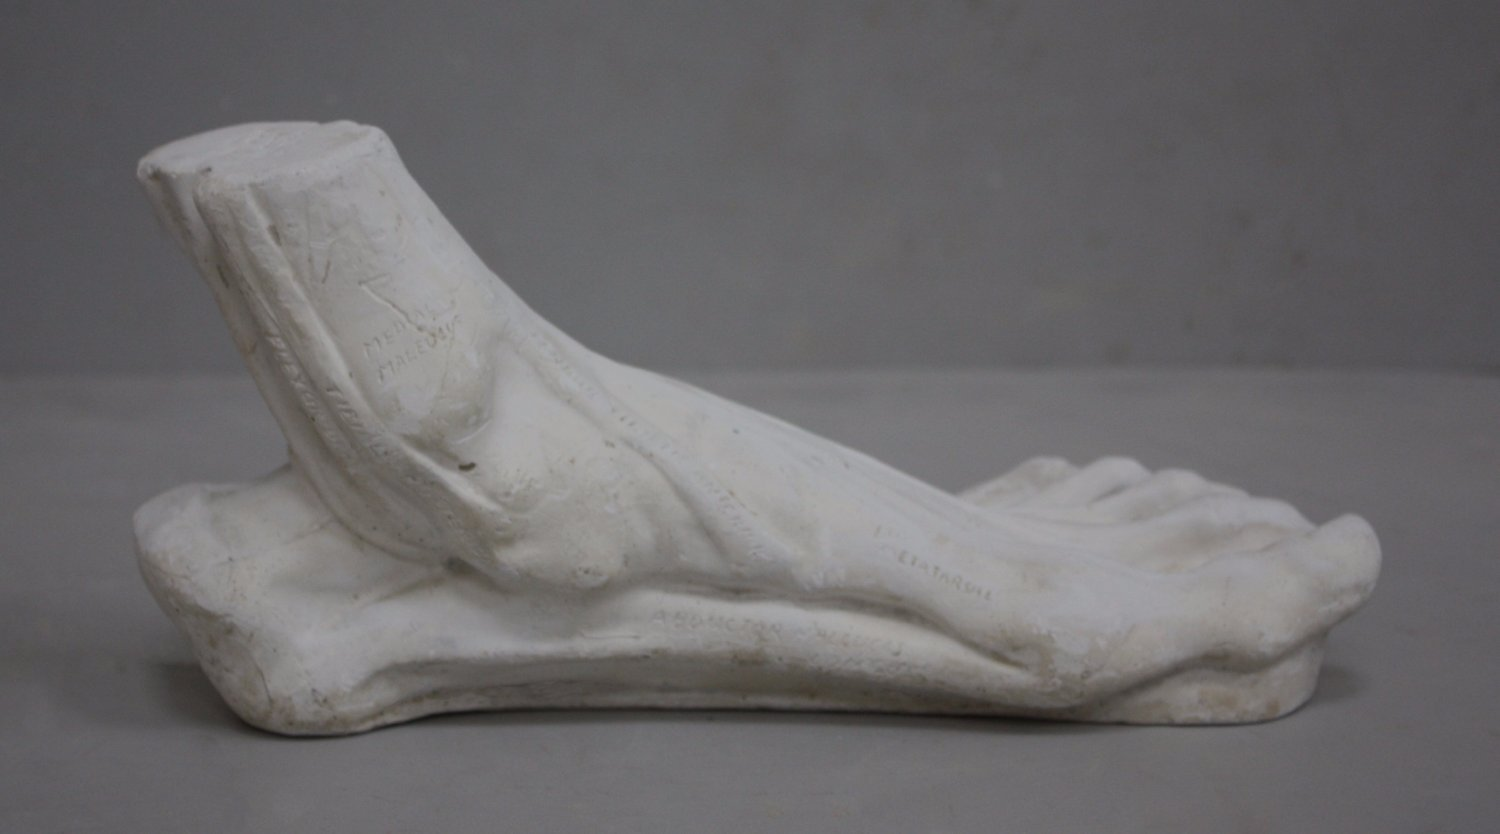 Anatomical Left Foot - Item #629